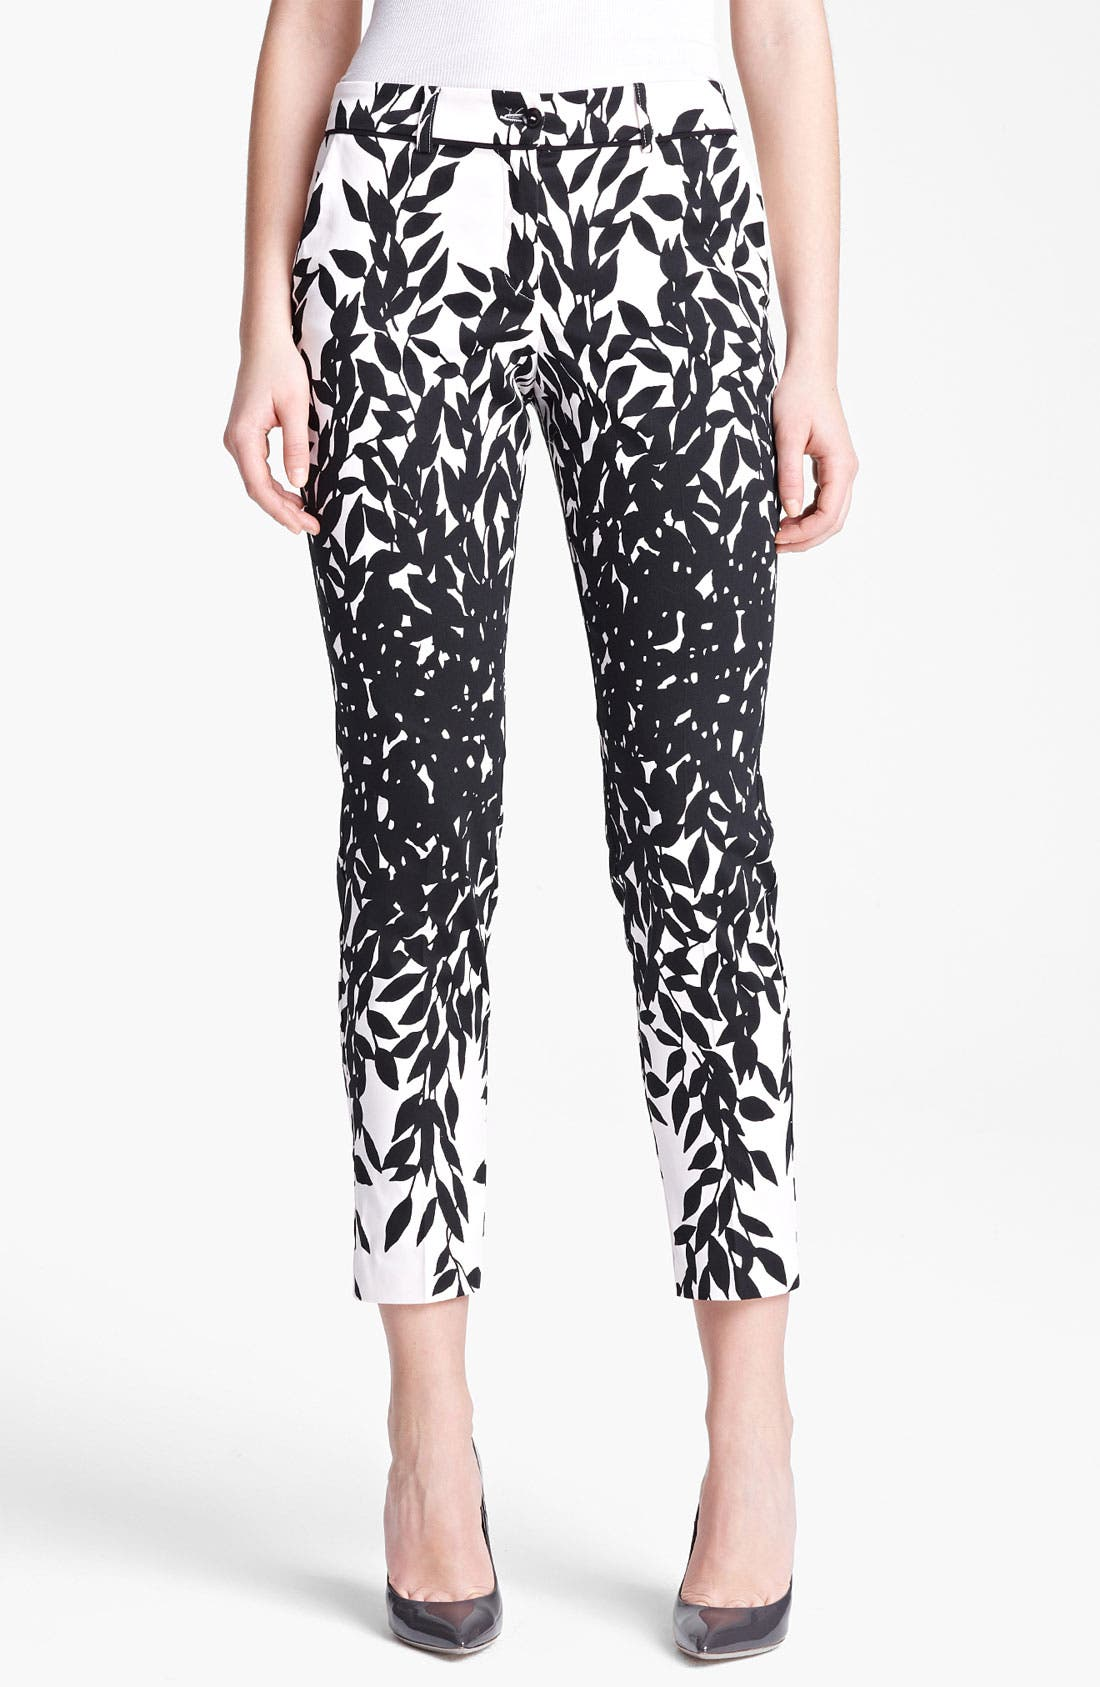 Main Image - Blumarine Print Stretch Cotton Capri Pants